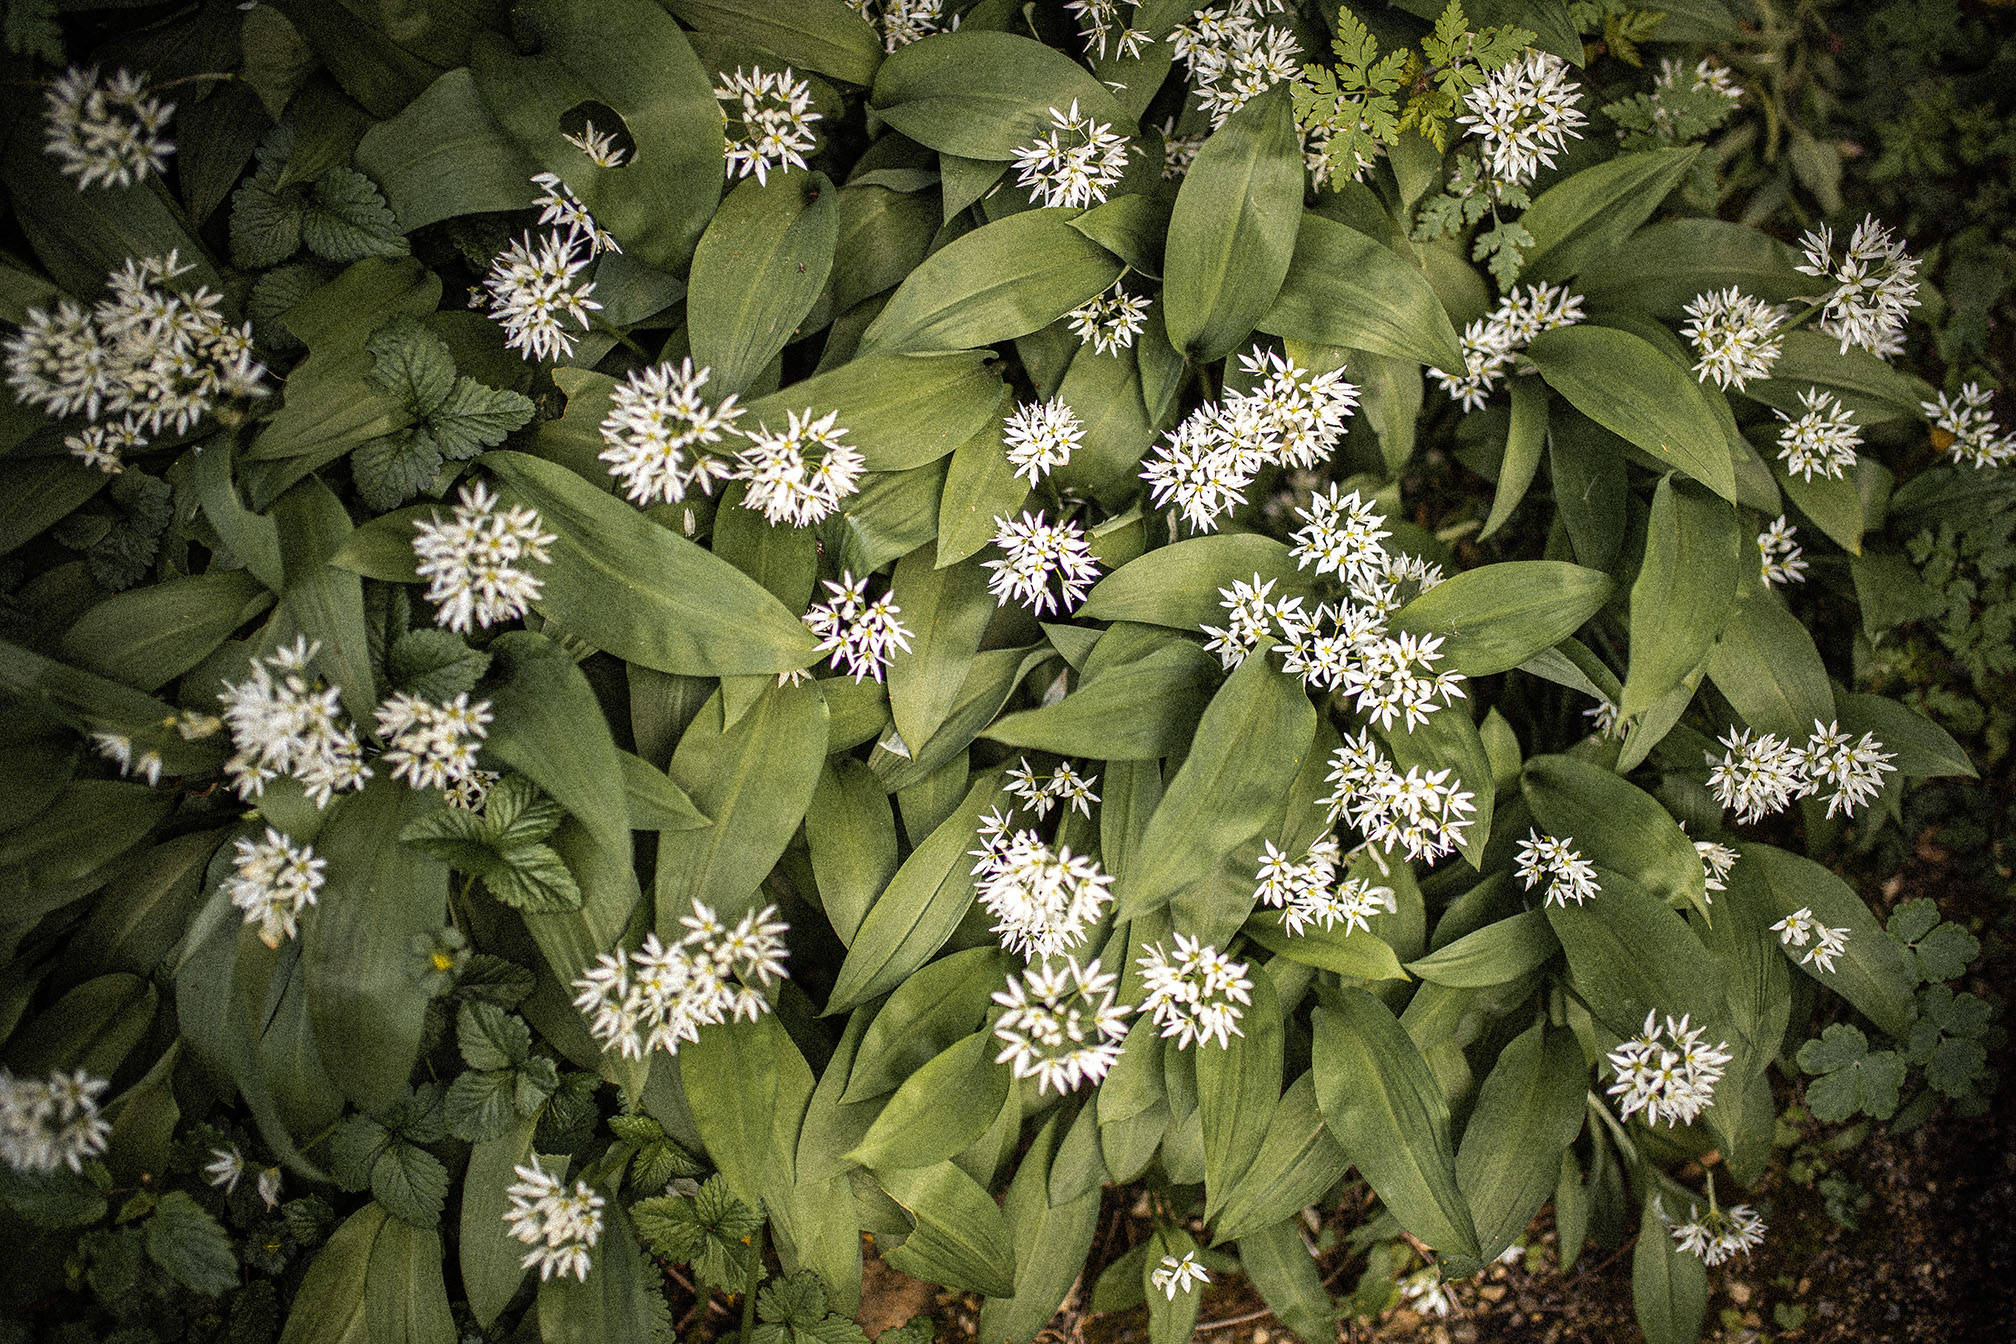 Wild Garlic carpets in Monmouthshire